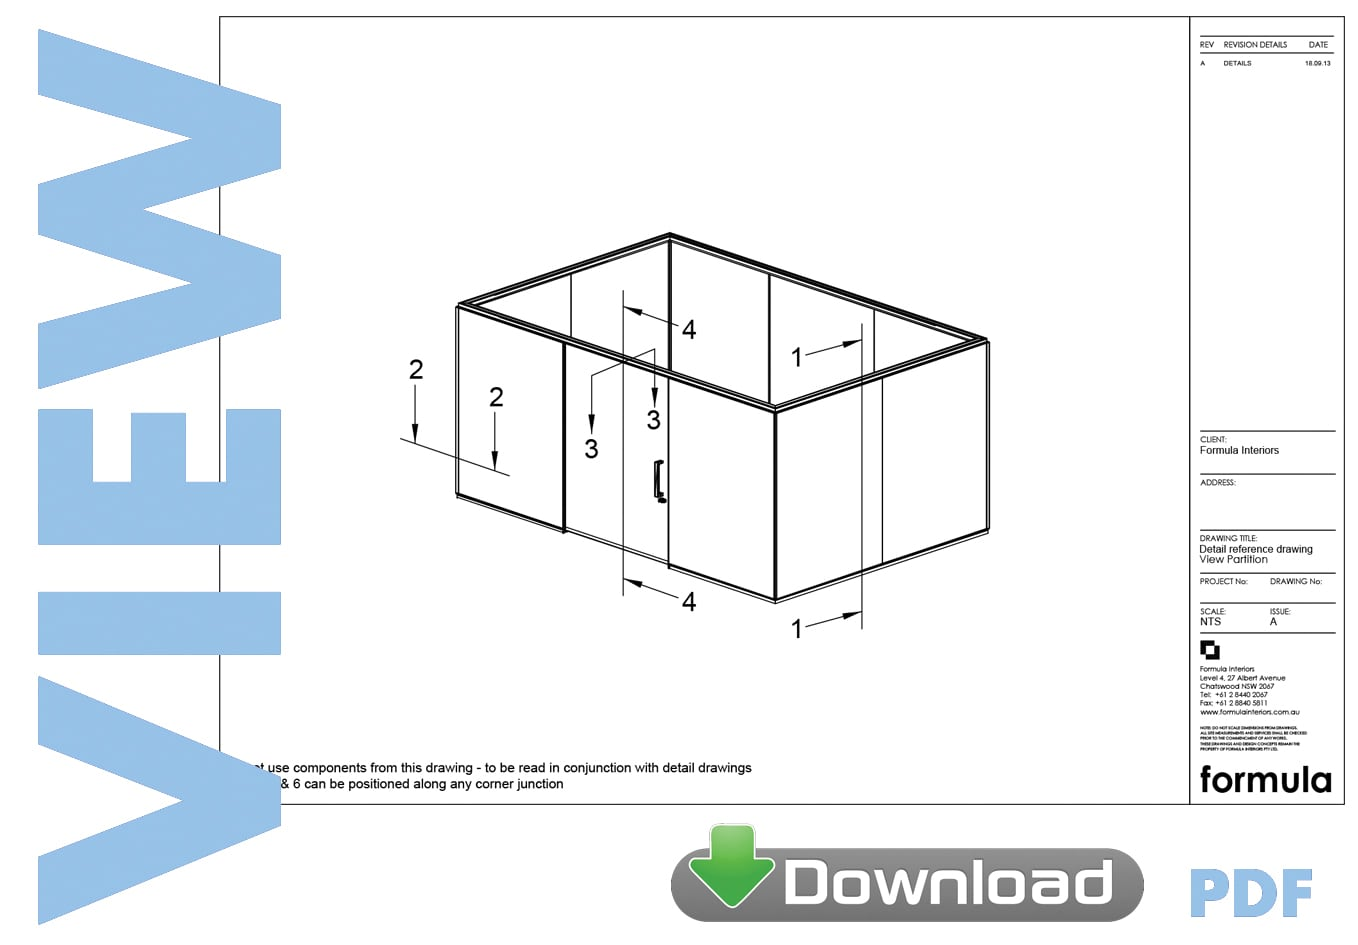 View Partition System drawings pdf download - Formula Interiors